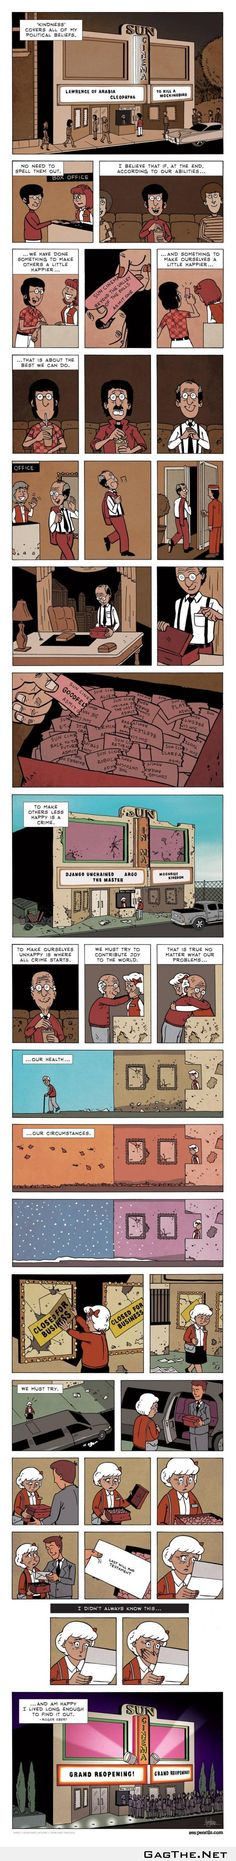 On Kindness from Zen Pencils